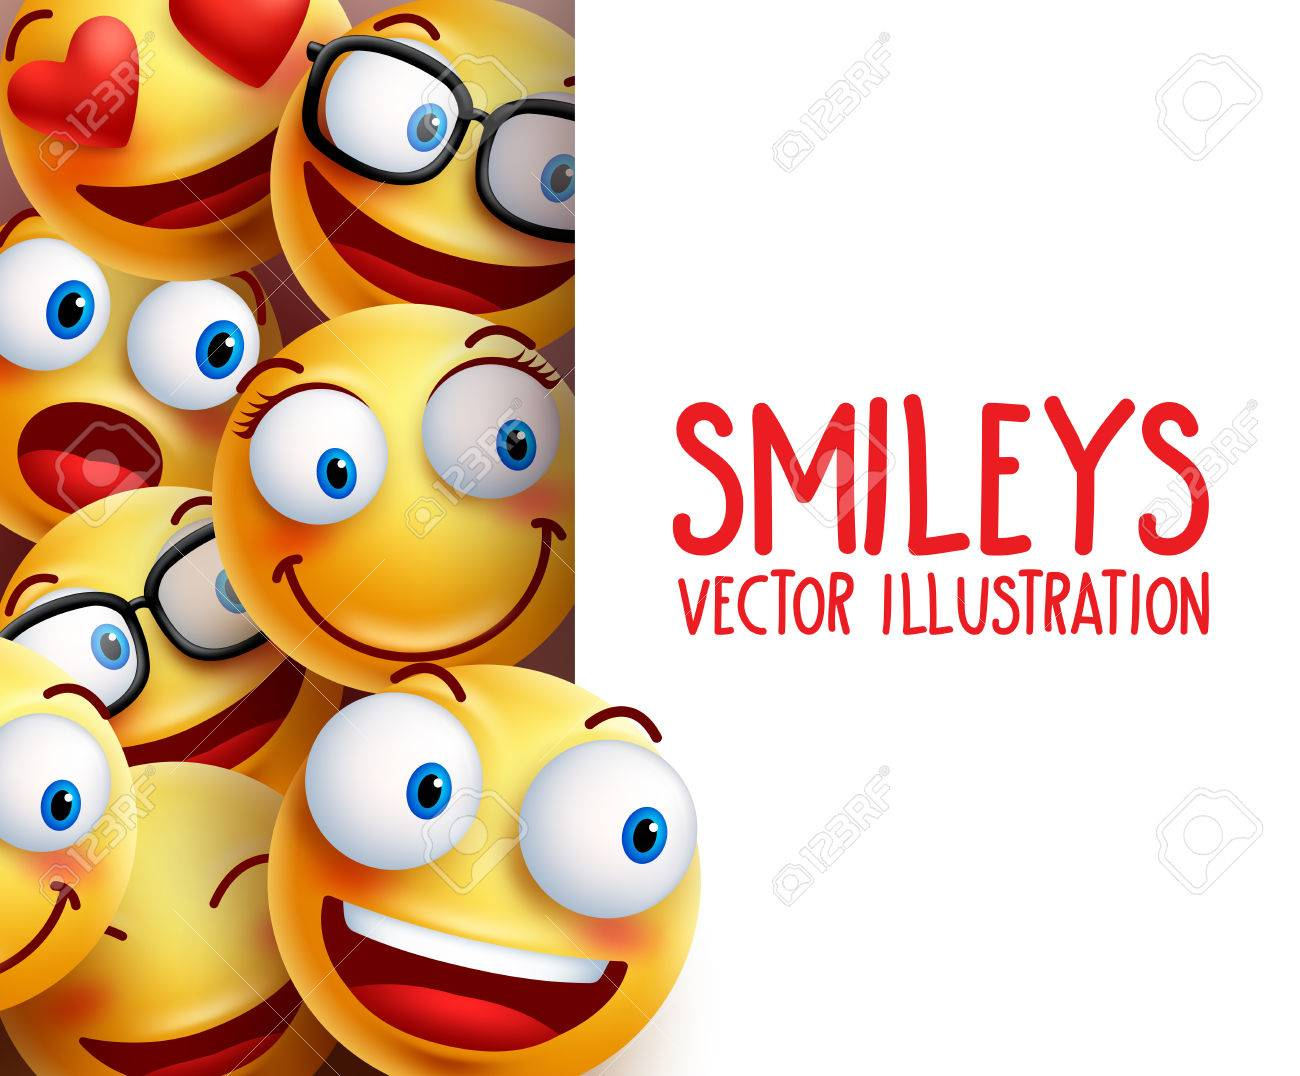 Funny smiley face characters happy smiling in the background with empty white board space for text. illustration. - 65999716